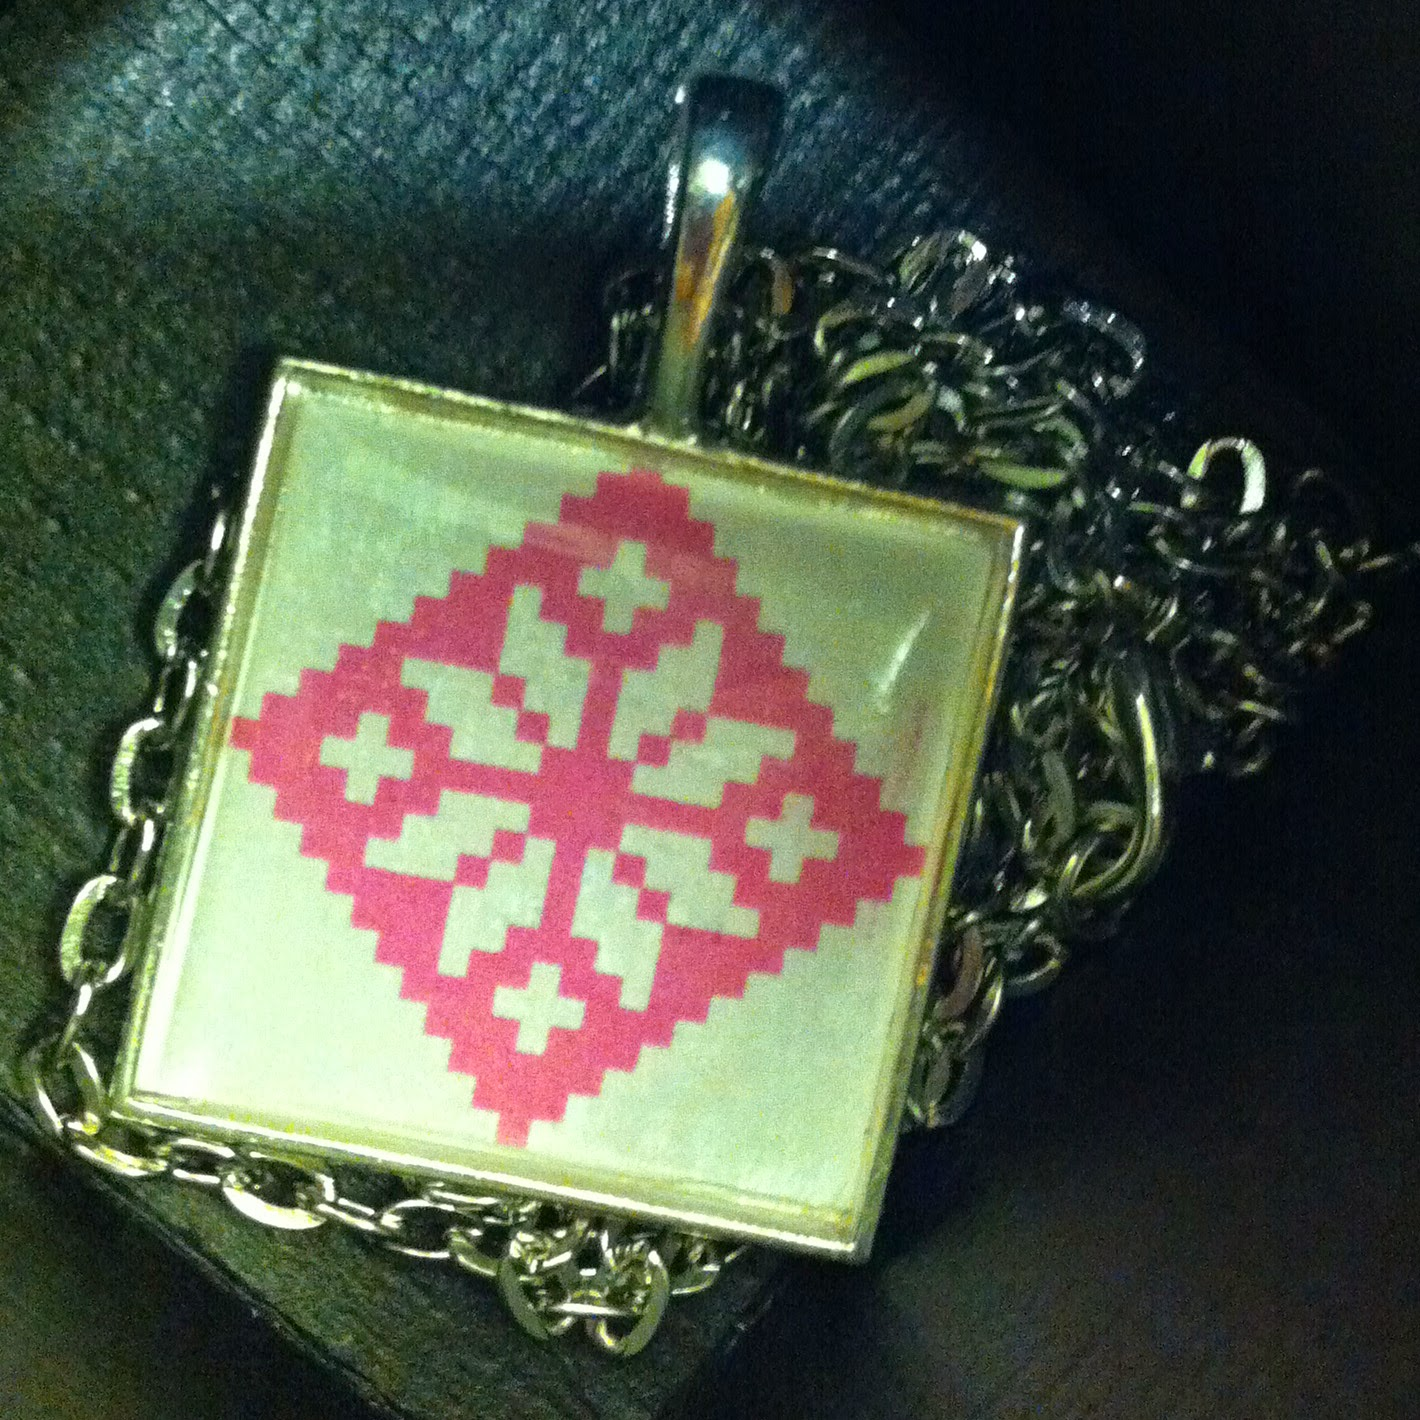 a pendant with a geometric pattern in a box